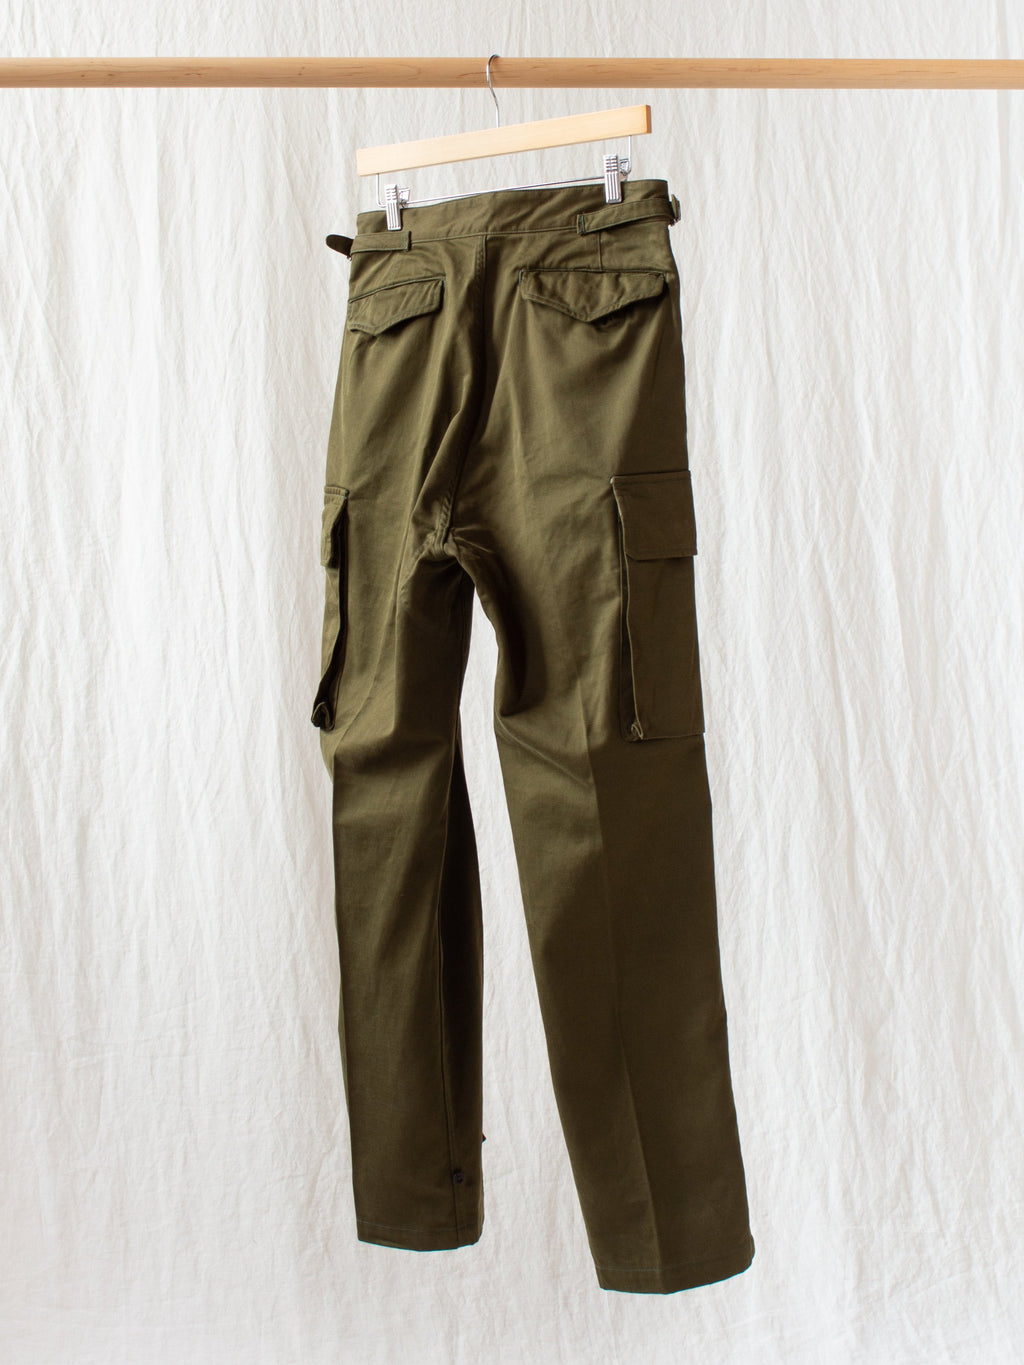 Namu Shop - Kaptain Sunshine Army Cargo Pants - Olive